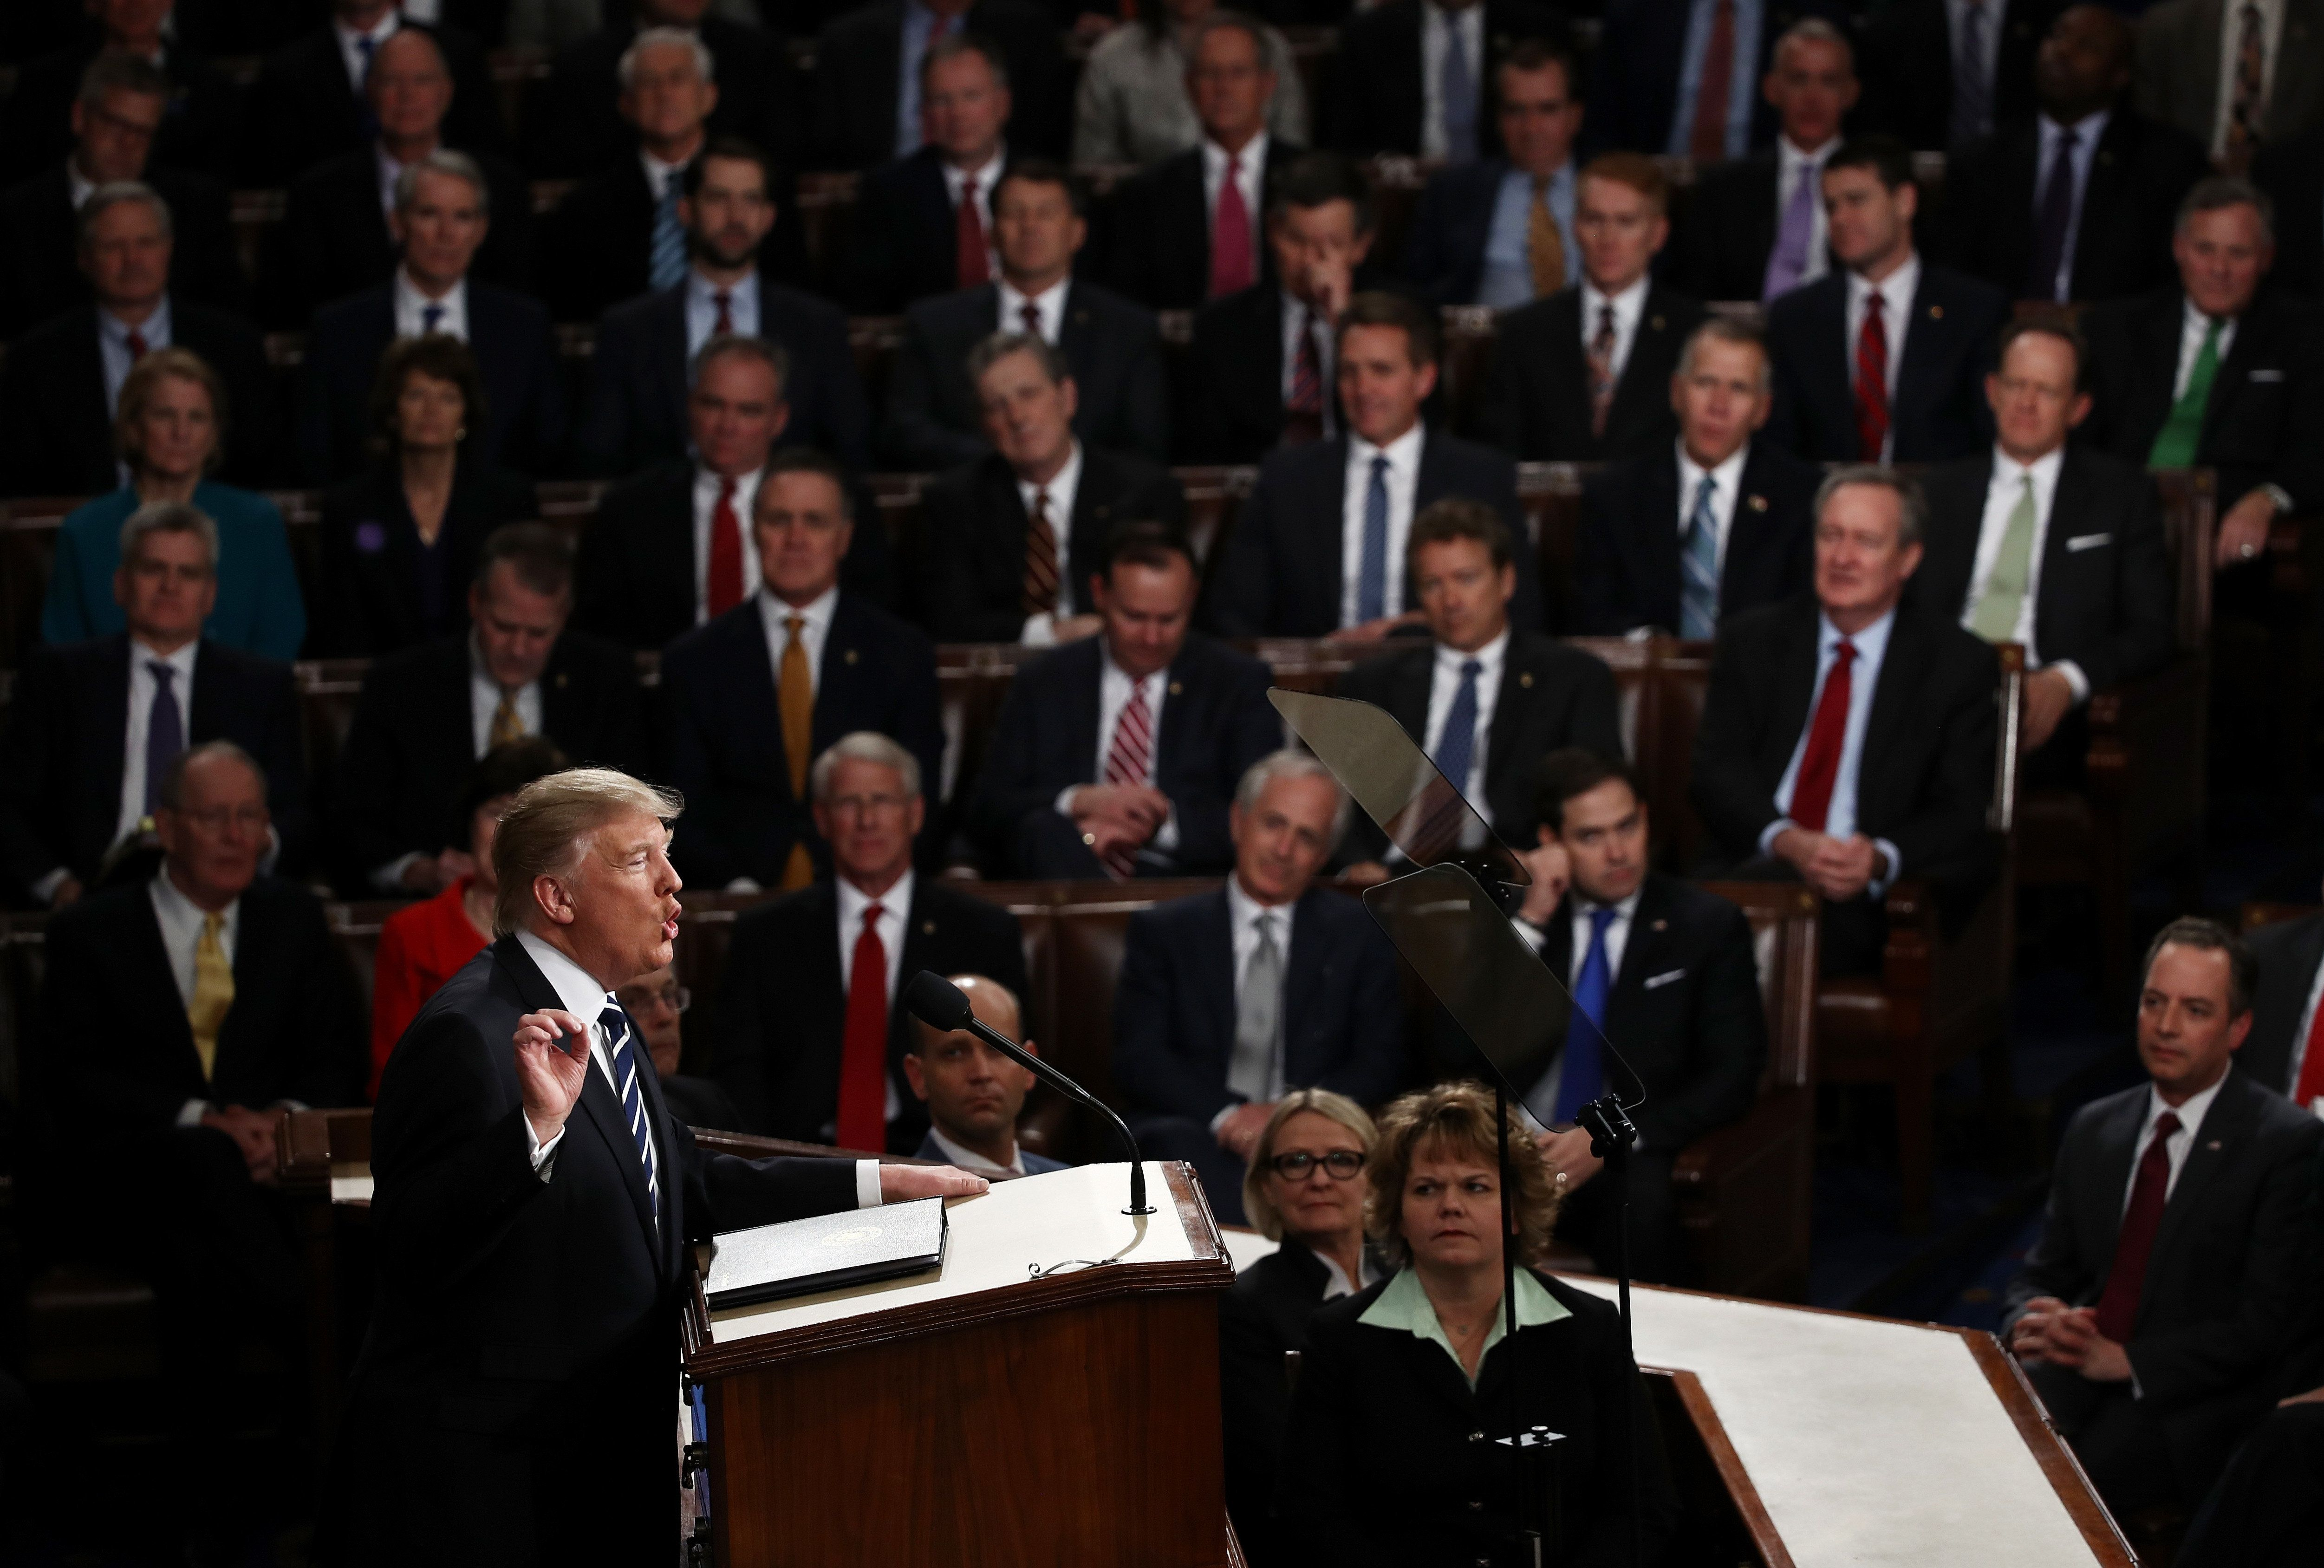 President Donald Trump arrives to addresses a joint session of the U.S. Congress on Tuesday.